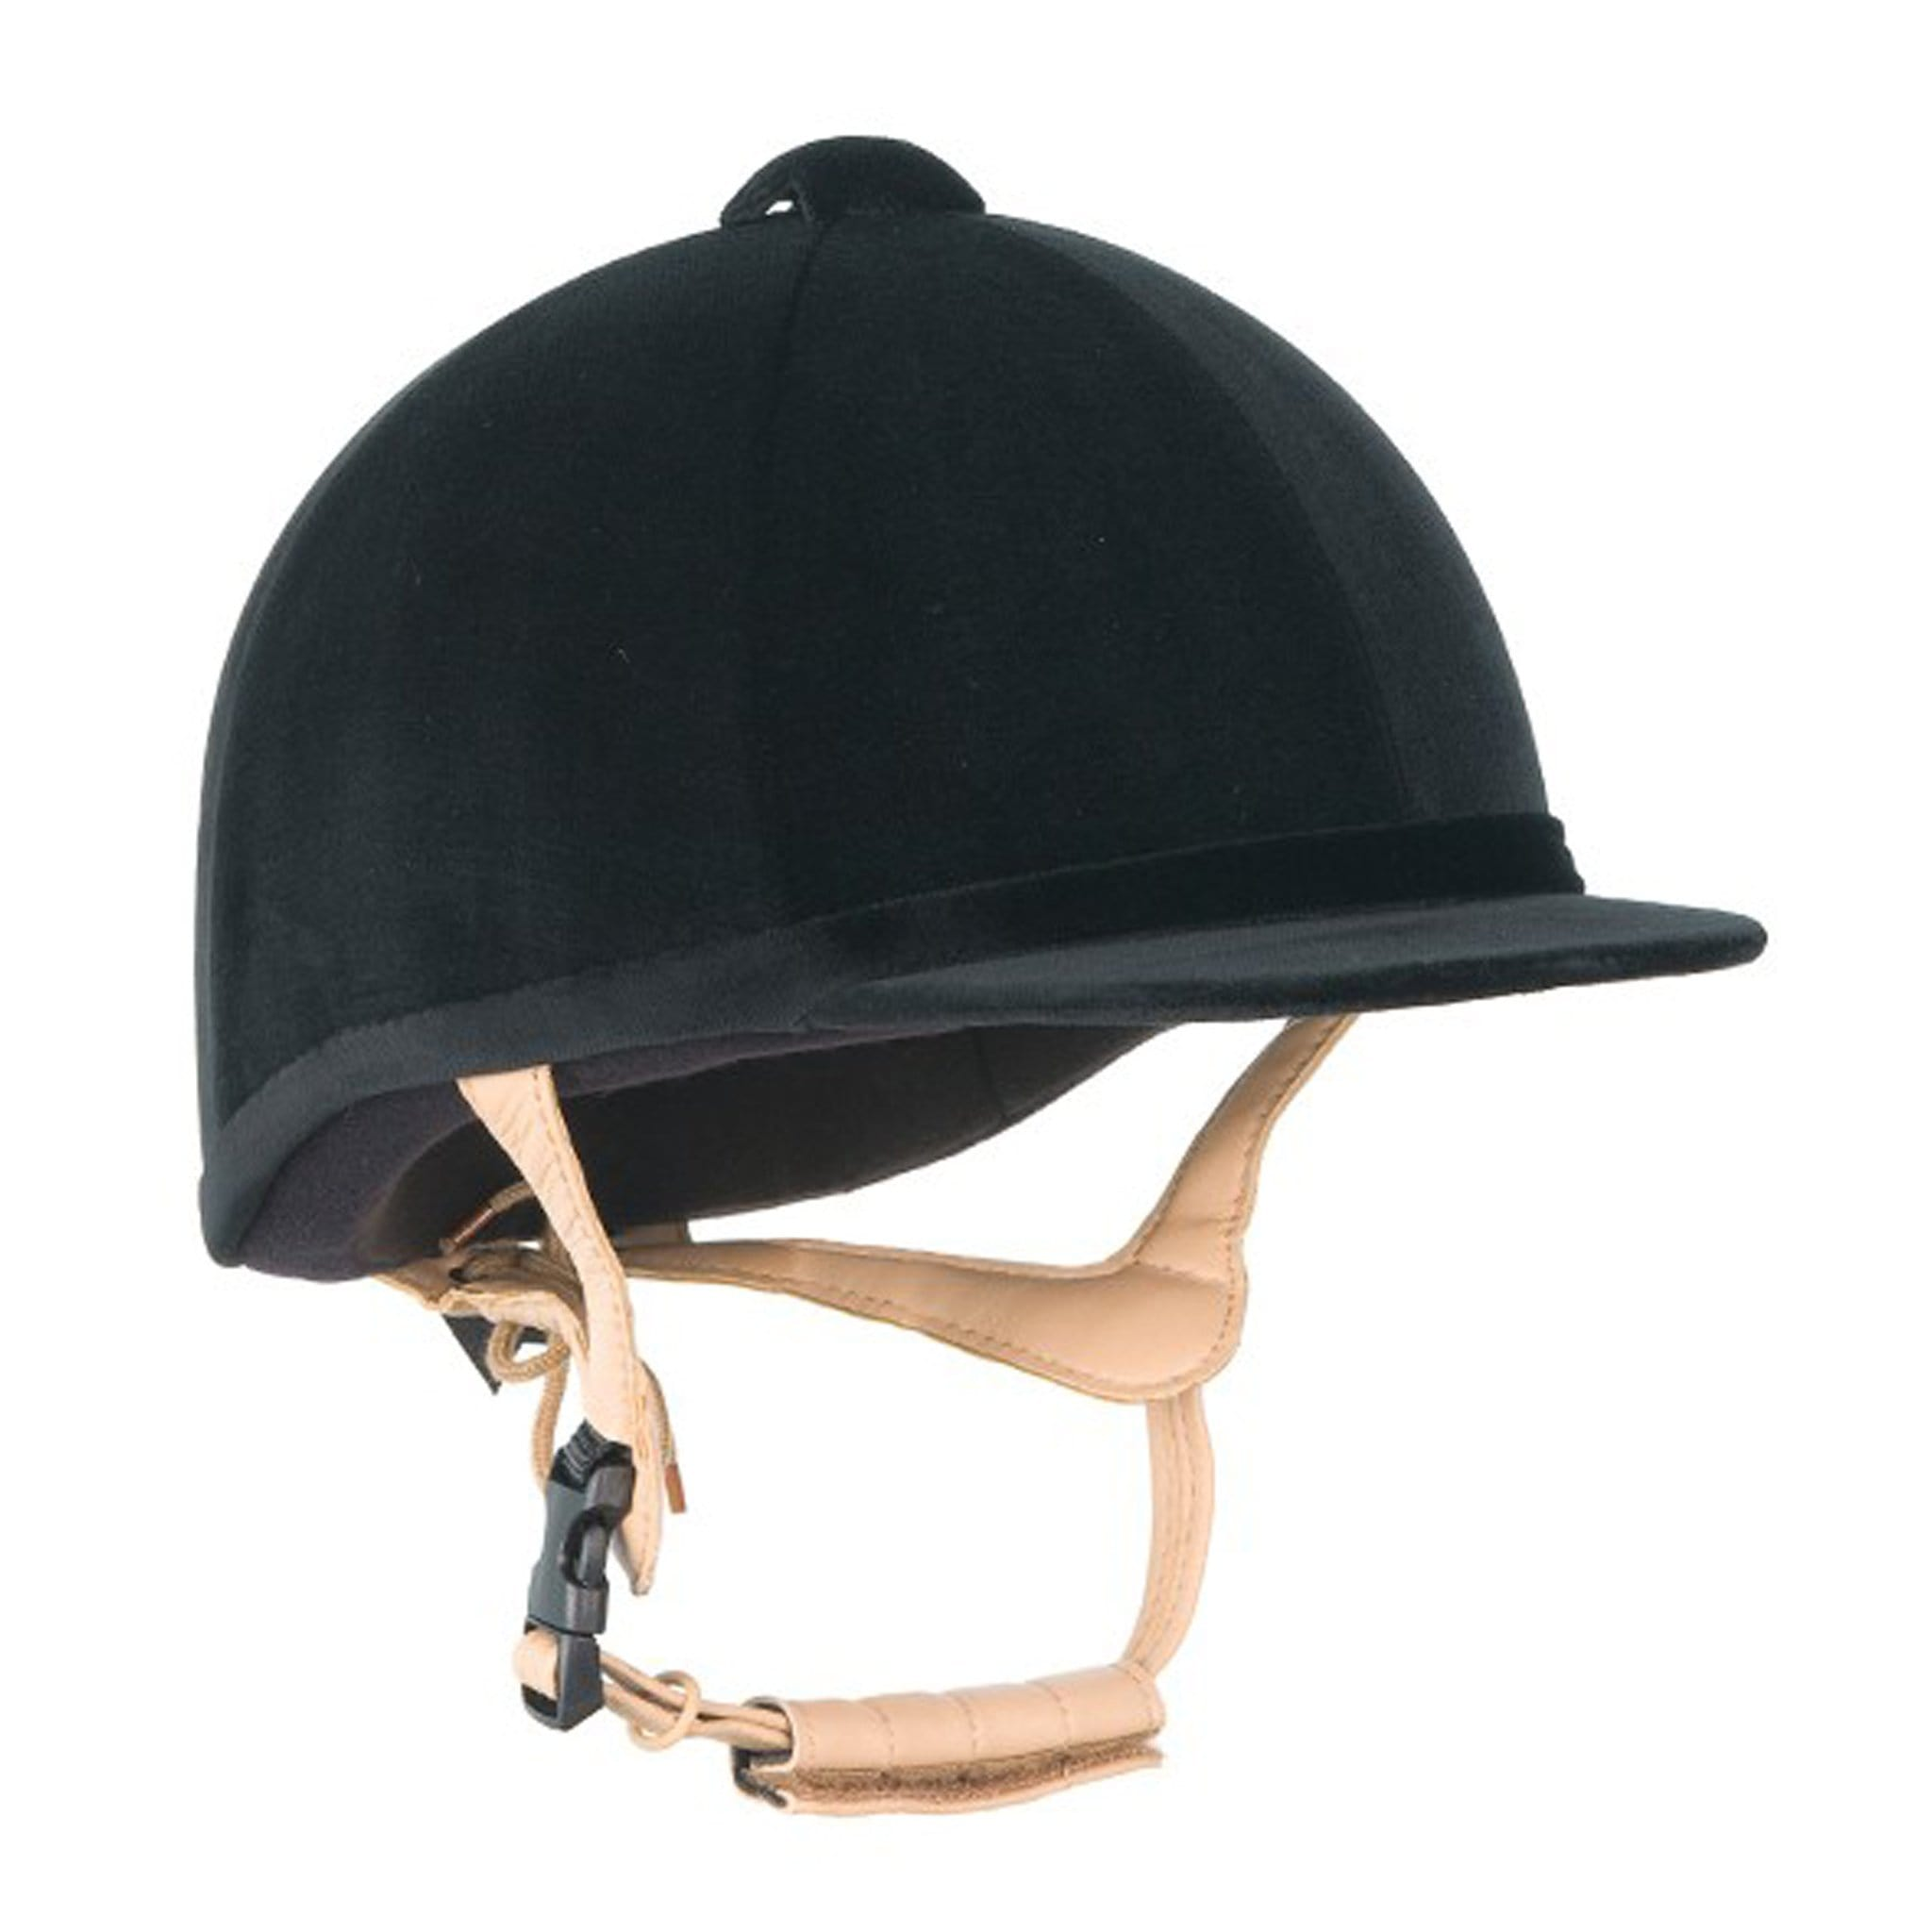 Champion Grand Prix Riding Hat Black GRANDPRIX/BK/5.